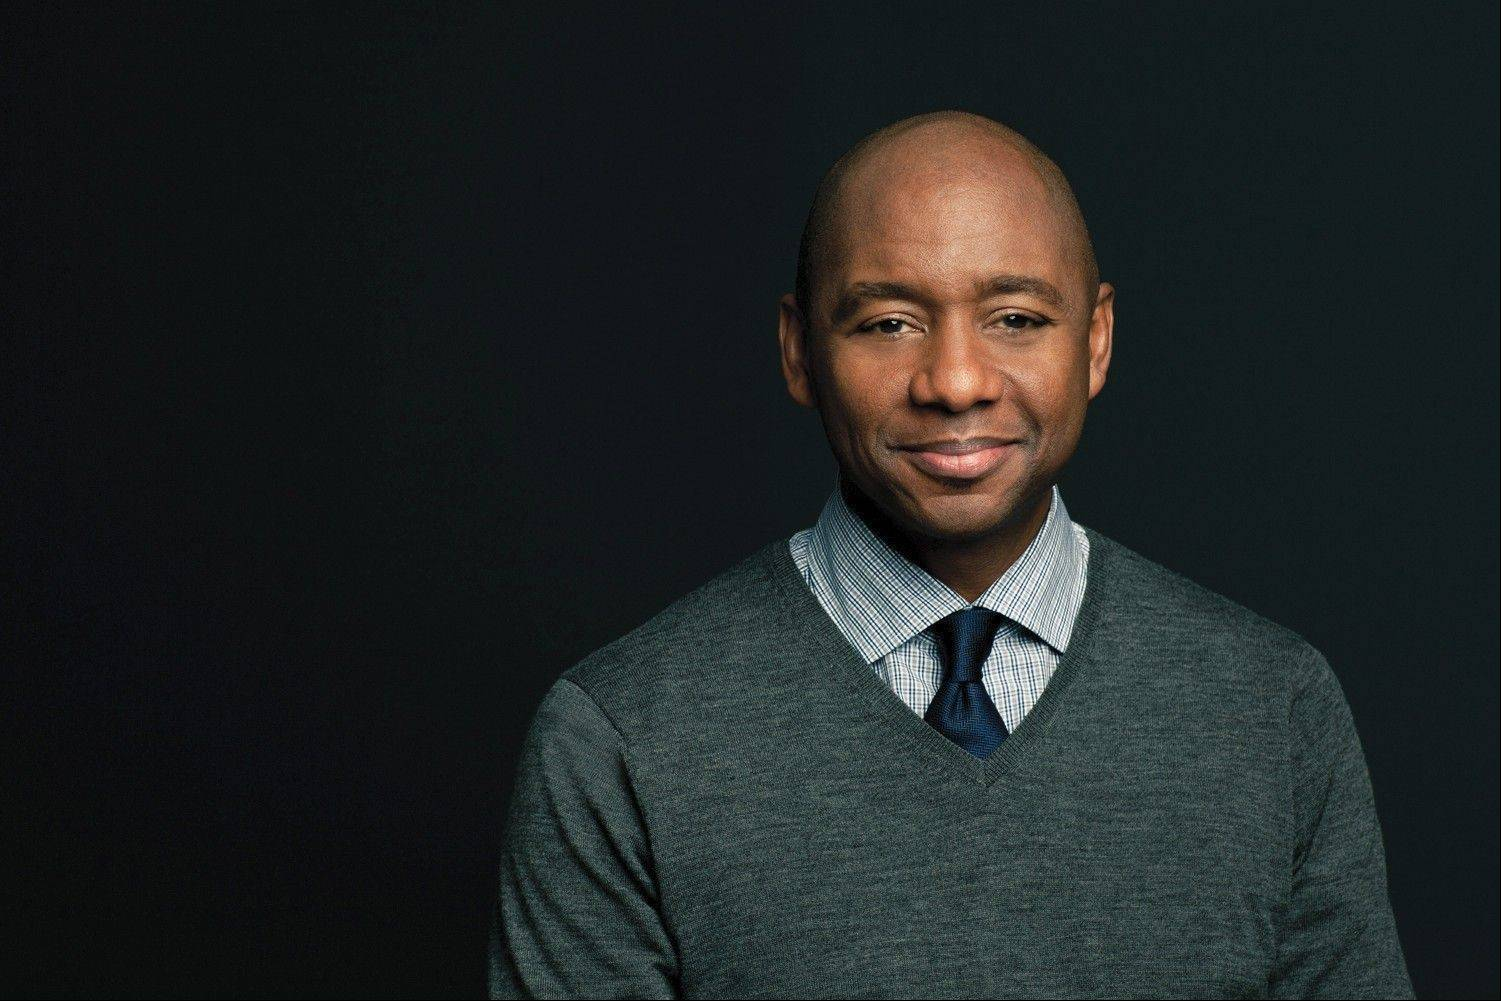 Branford Marsalis and his jazz quartet perform at North Central College's Wentz Concert Hall in Naperville.